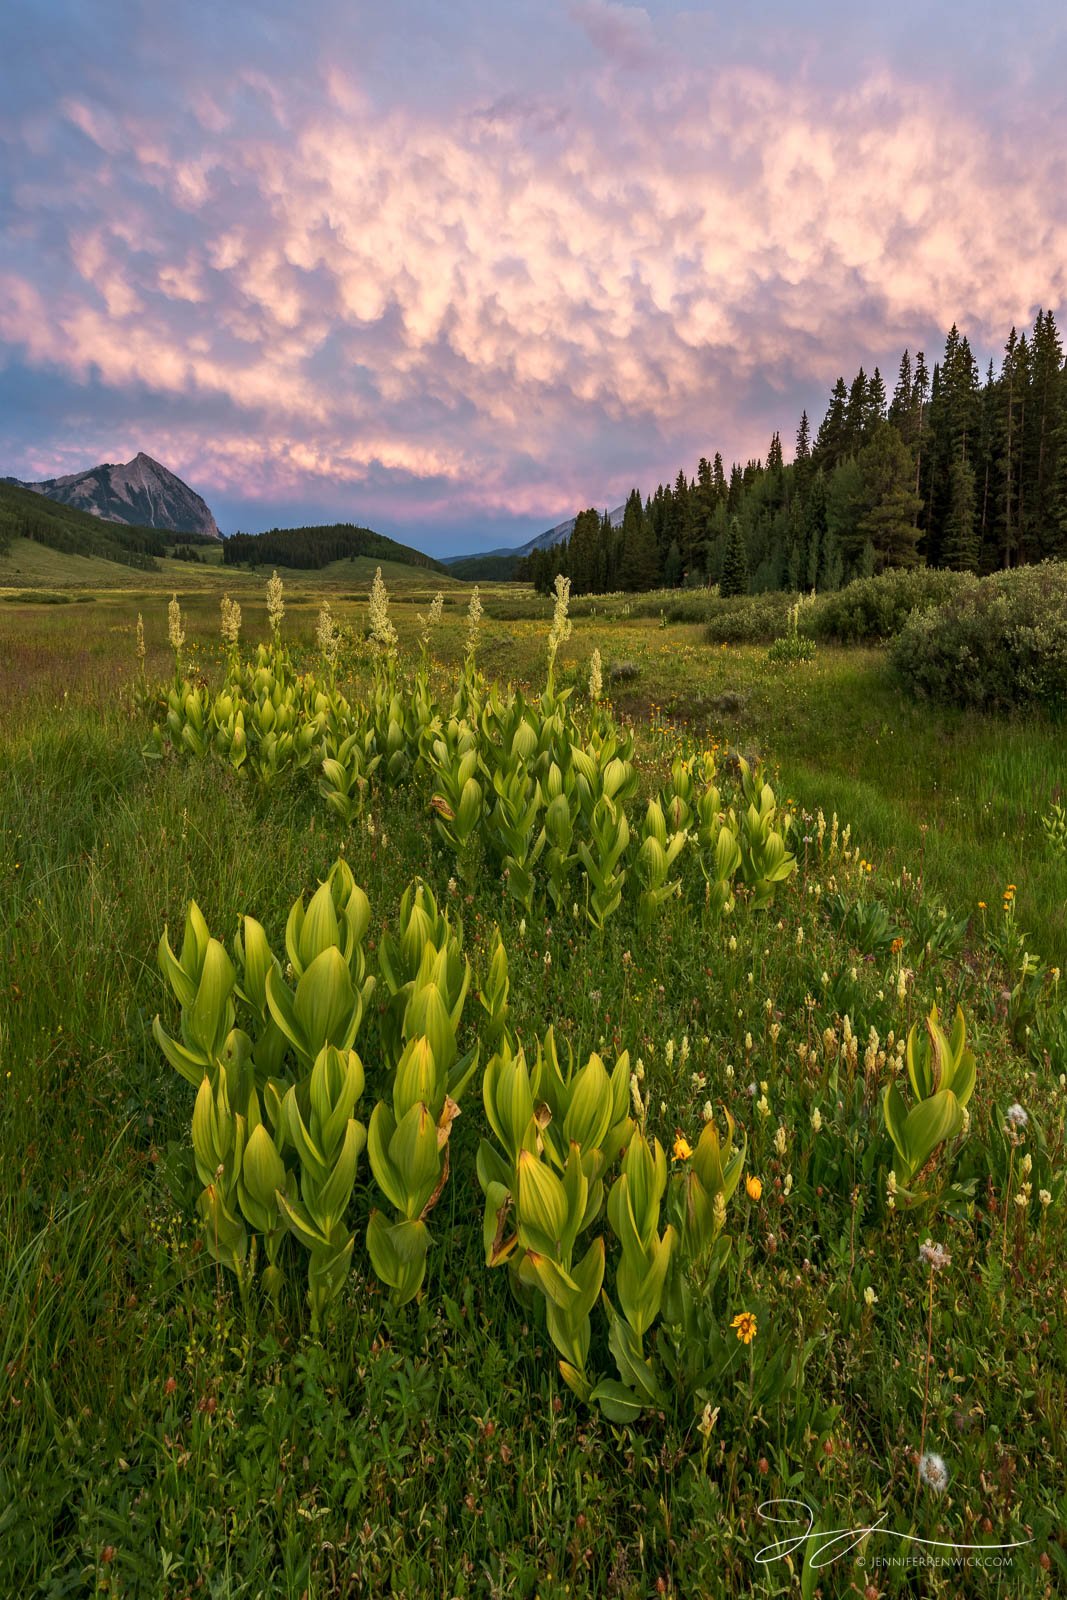 Colorado, Crested Butte, landscape, wildflowers, lupine, sunset, mountains, clouds, meadow, Elk Mountains, Washington Gulch, false hellebore, photo